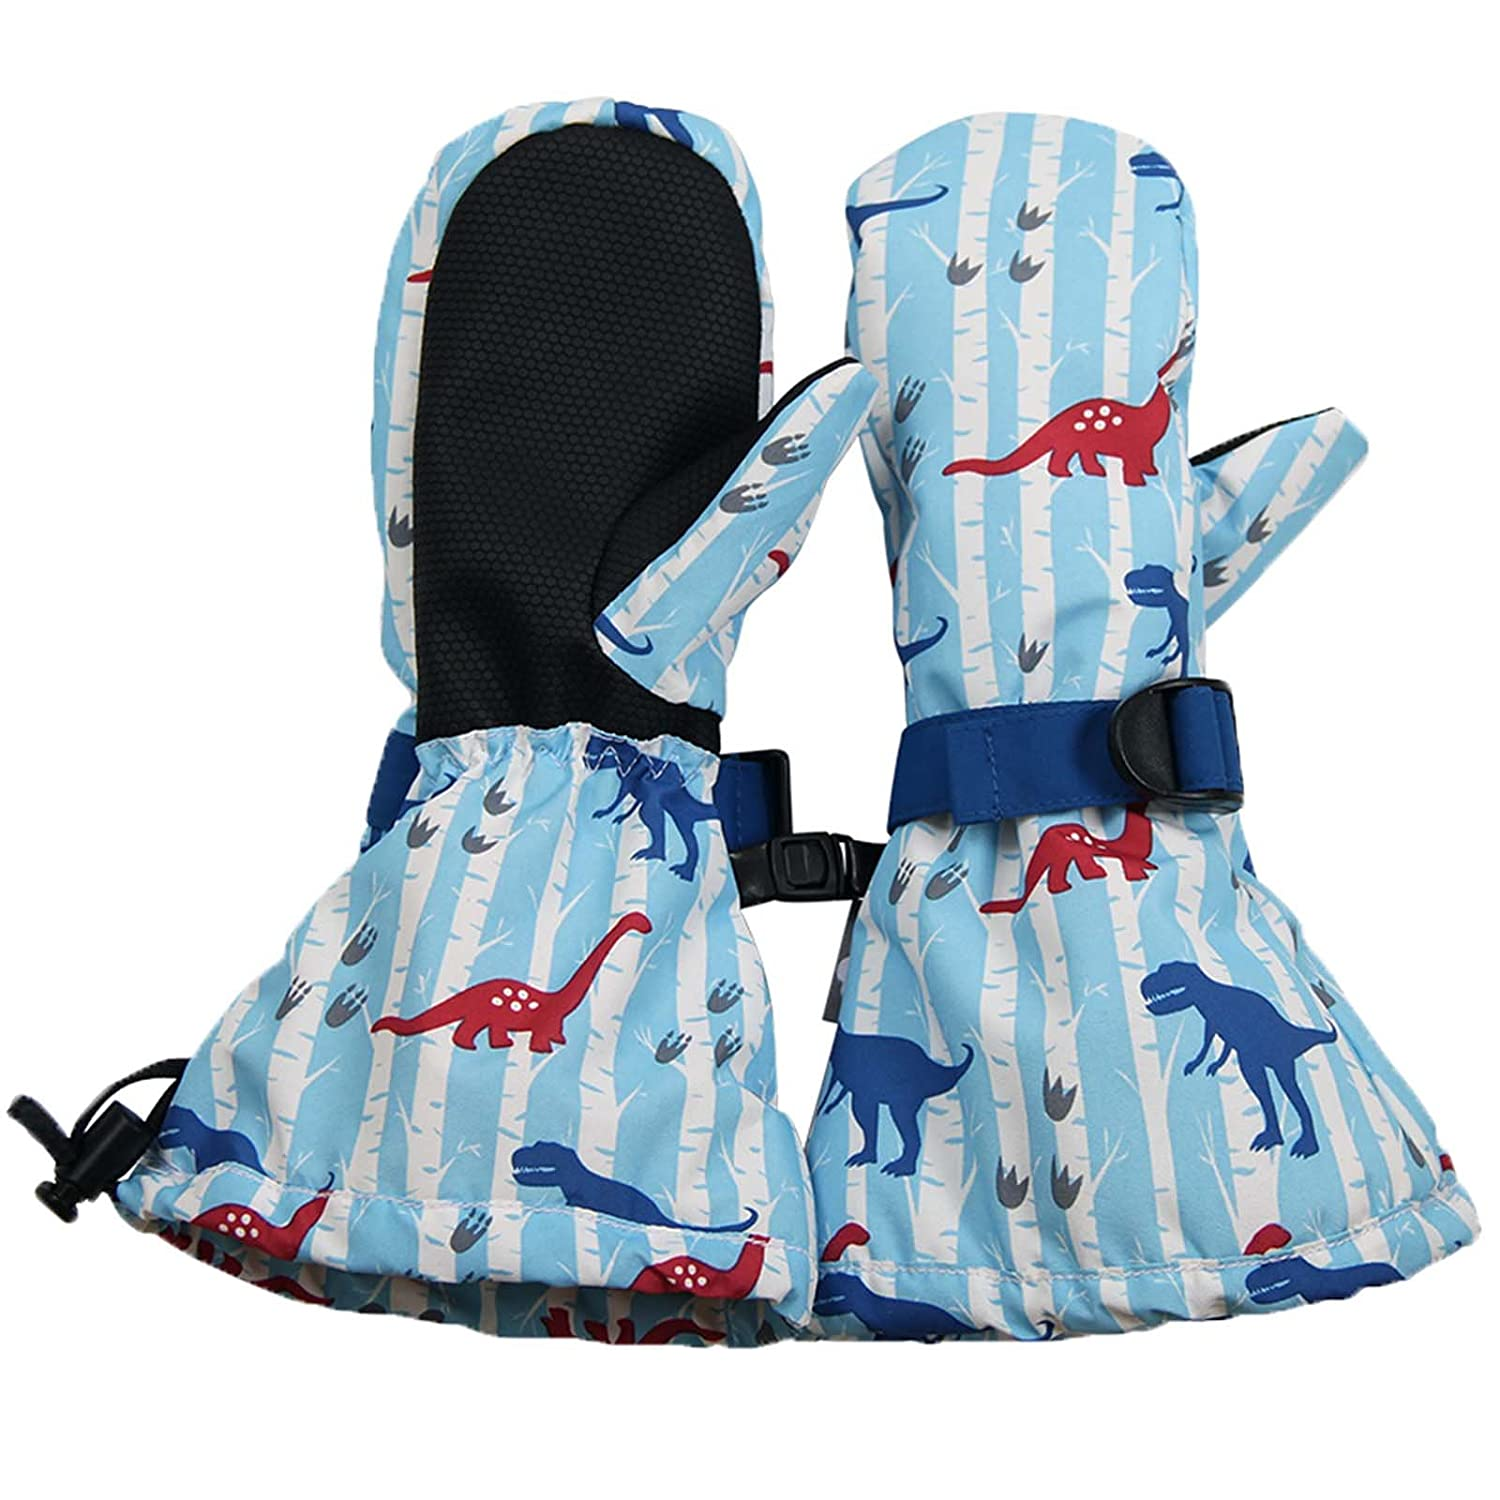 Waterproof Stay-on Snow Mittens for Baby Toddler Kids (L: 6-8Y, Dinosaur) Twinklebelle Design Inc. 24-11L